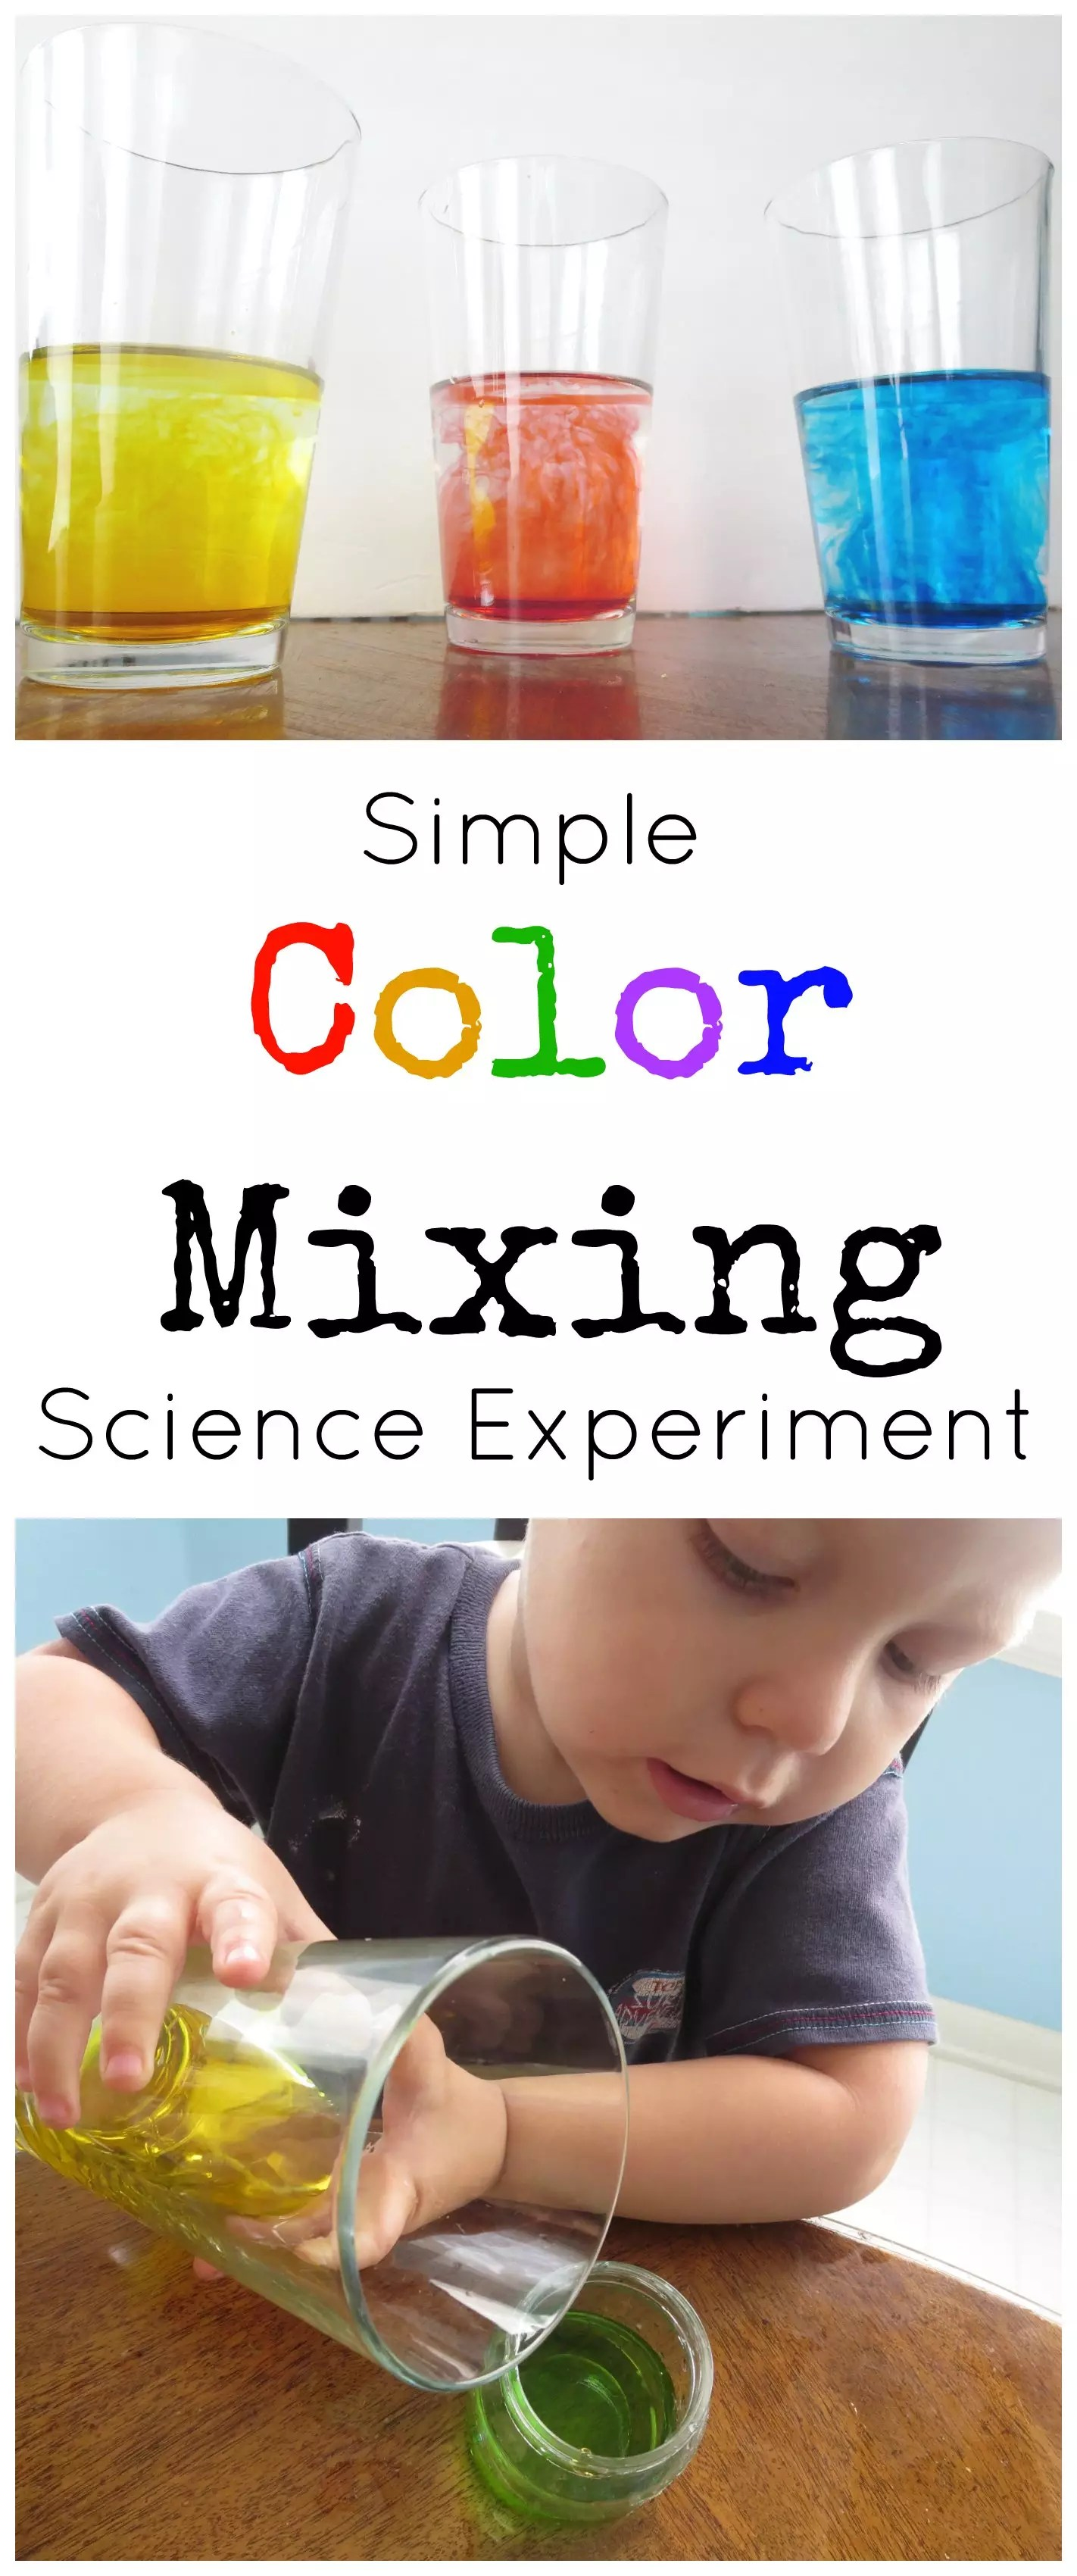 Simple Color Mixing Science Experiment For Preschoolers